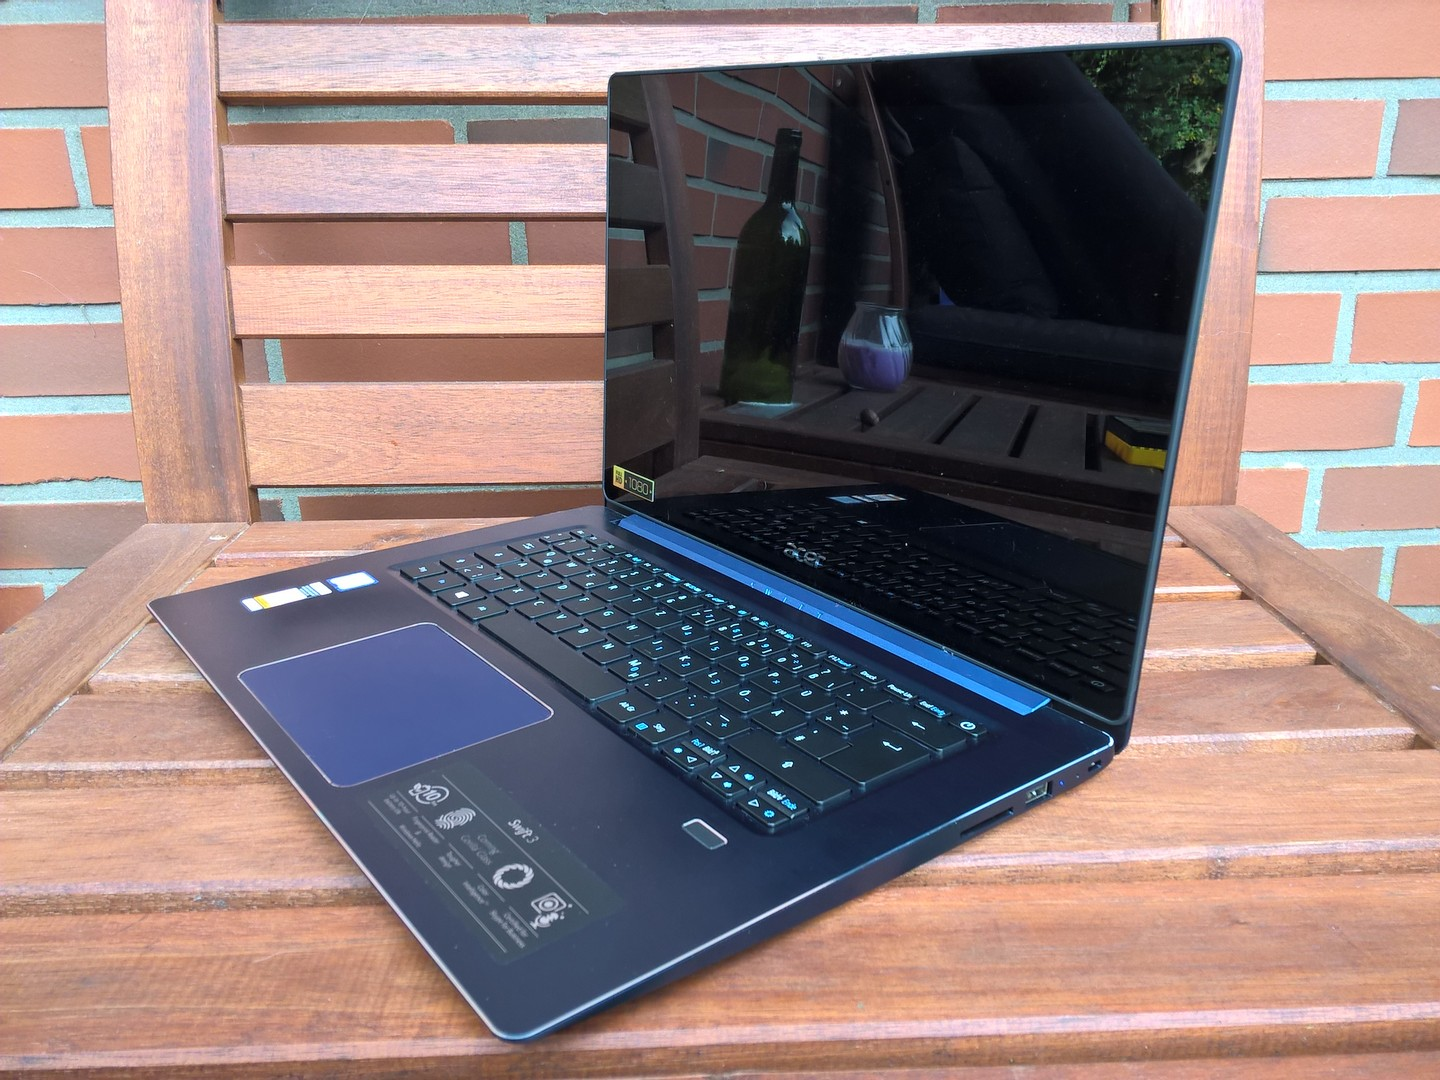 Test Acer Swift 3 SF314 (i5-7200U, HD 620) Laptop - Notebookcheck.com Tests